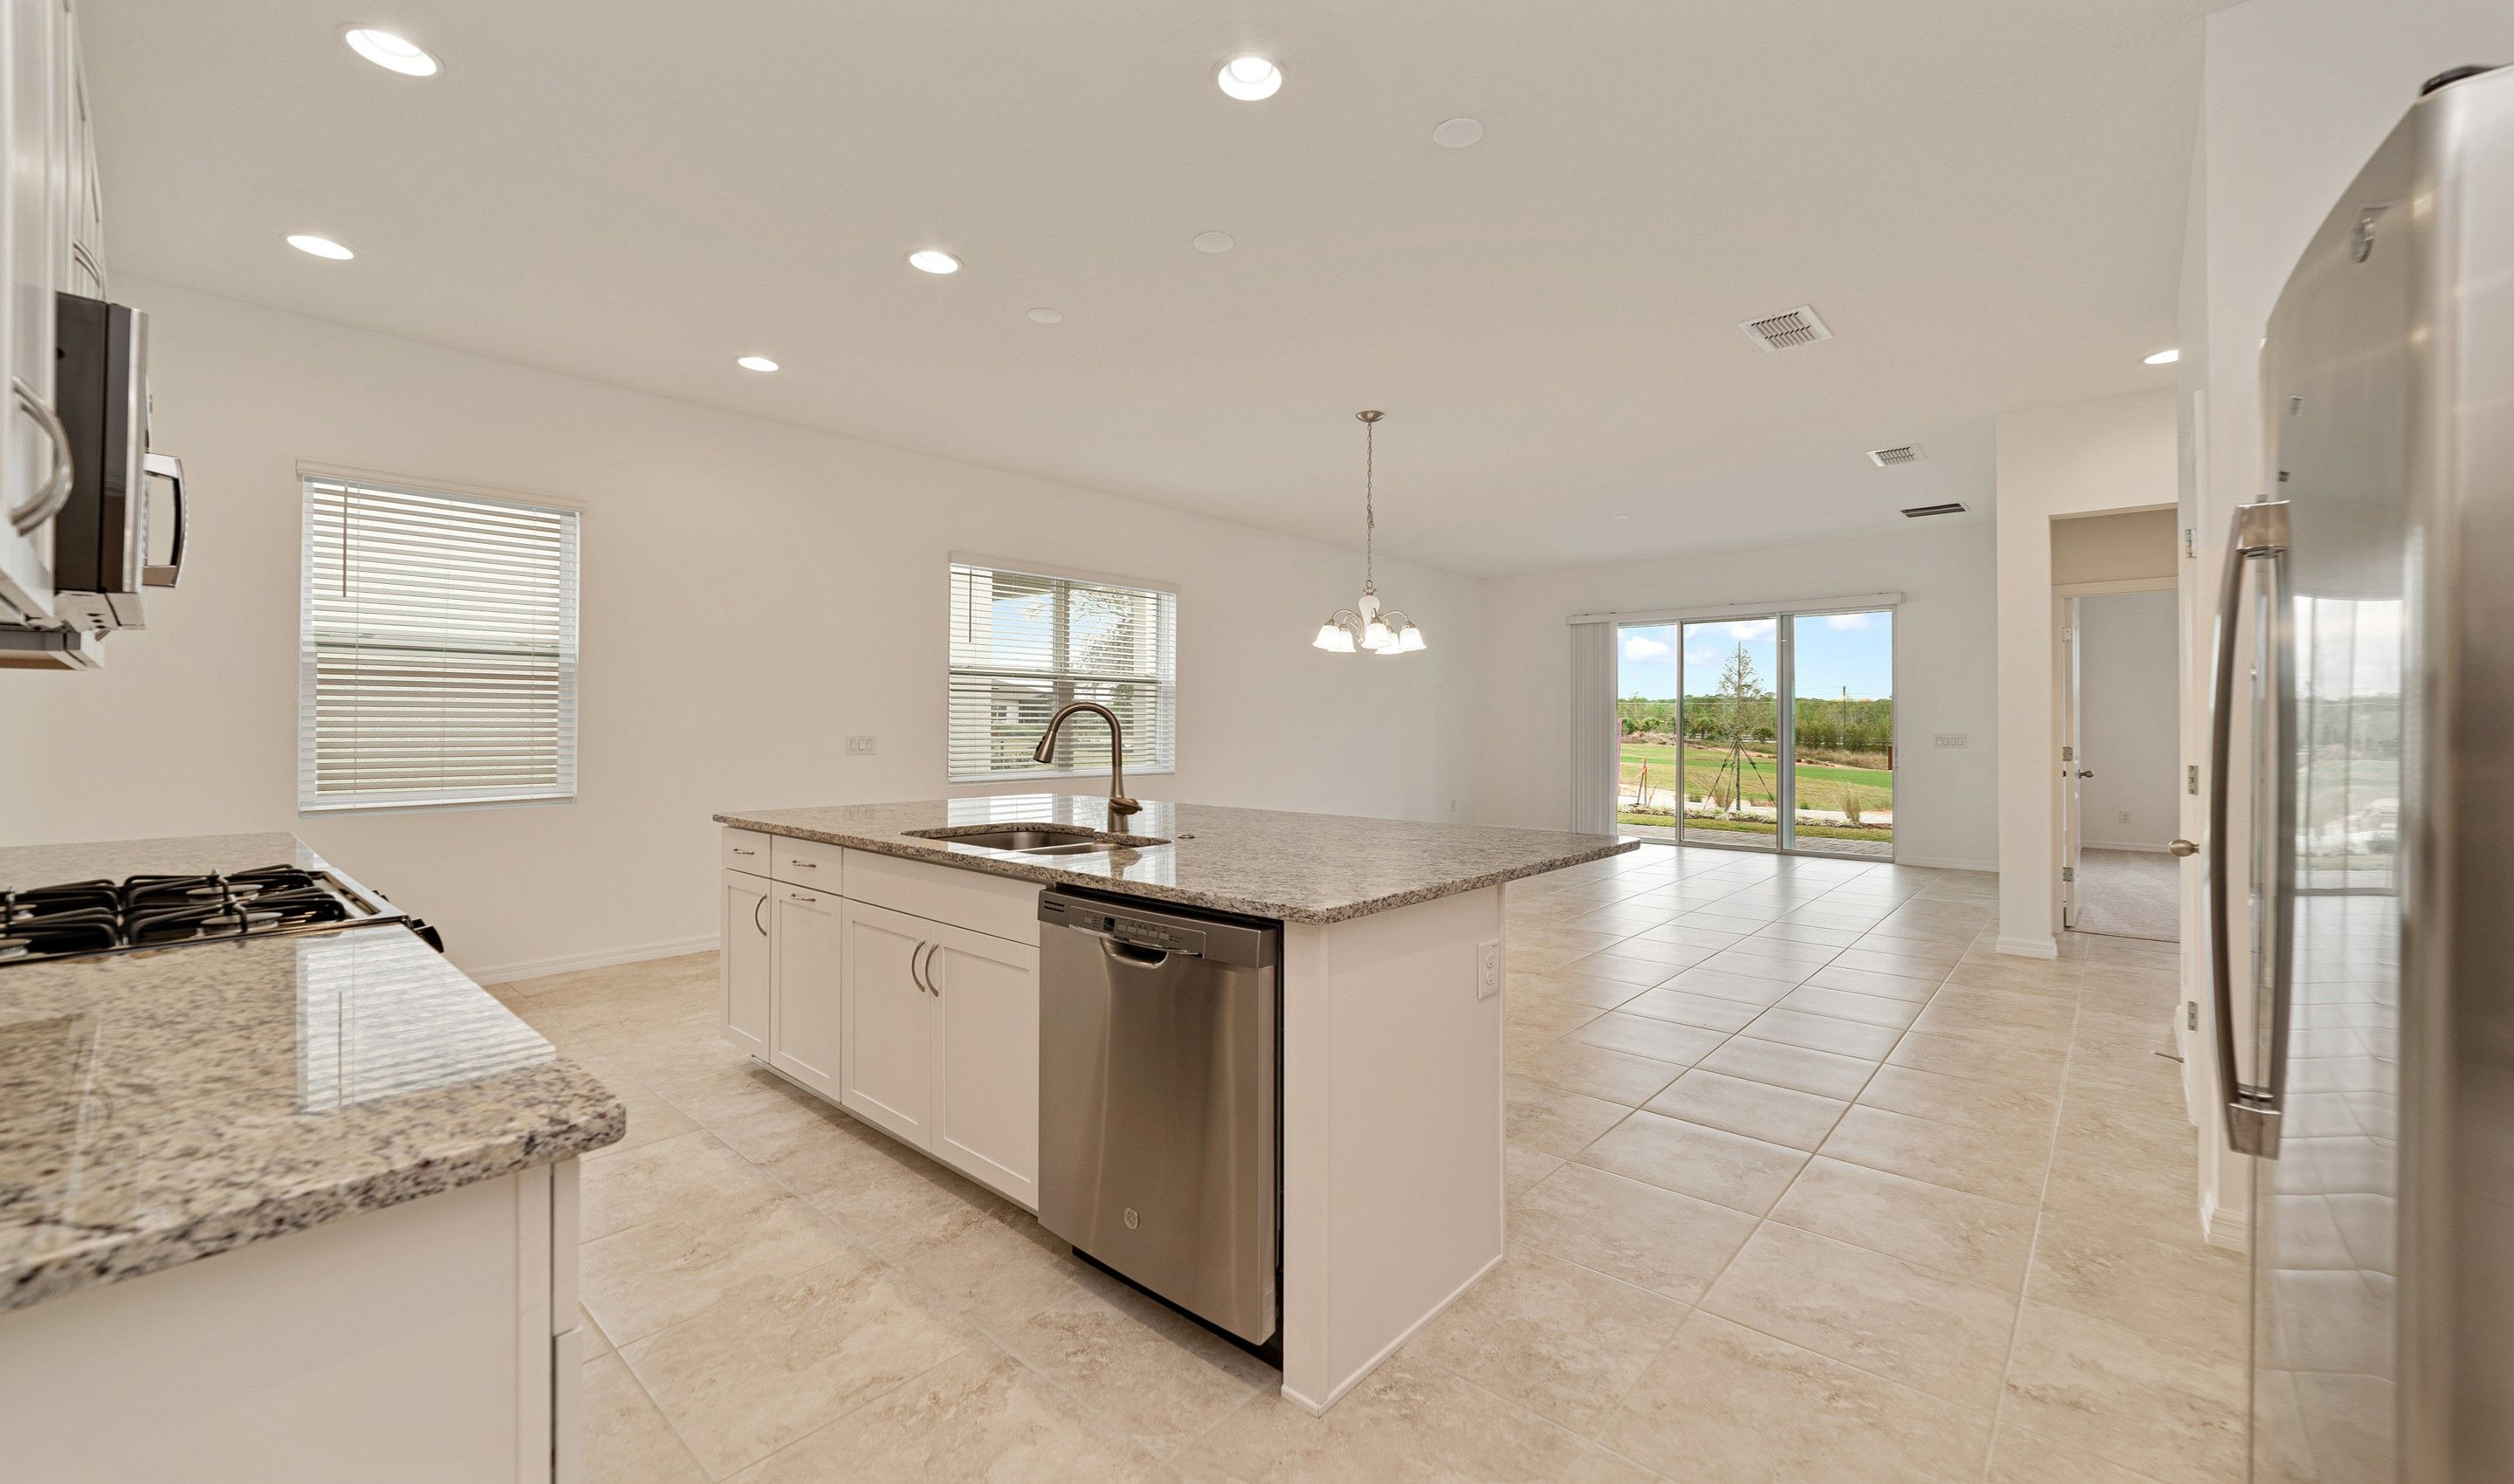 Kitchen featured in the Sandpiper By K. Hovnanian's® Four Seasons in Orlando, FL